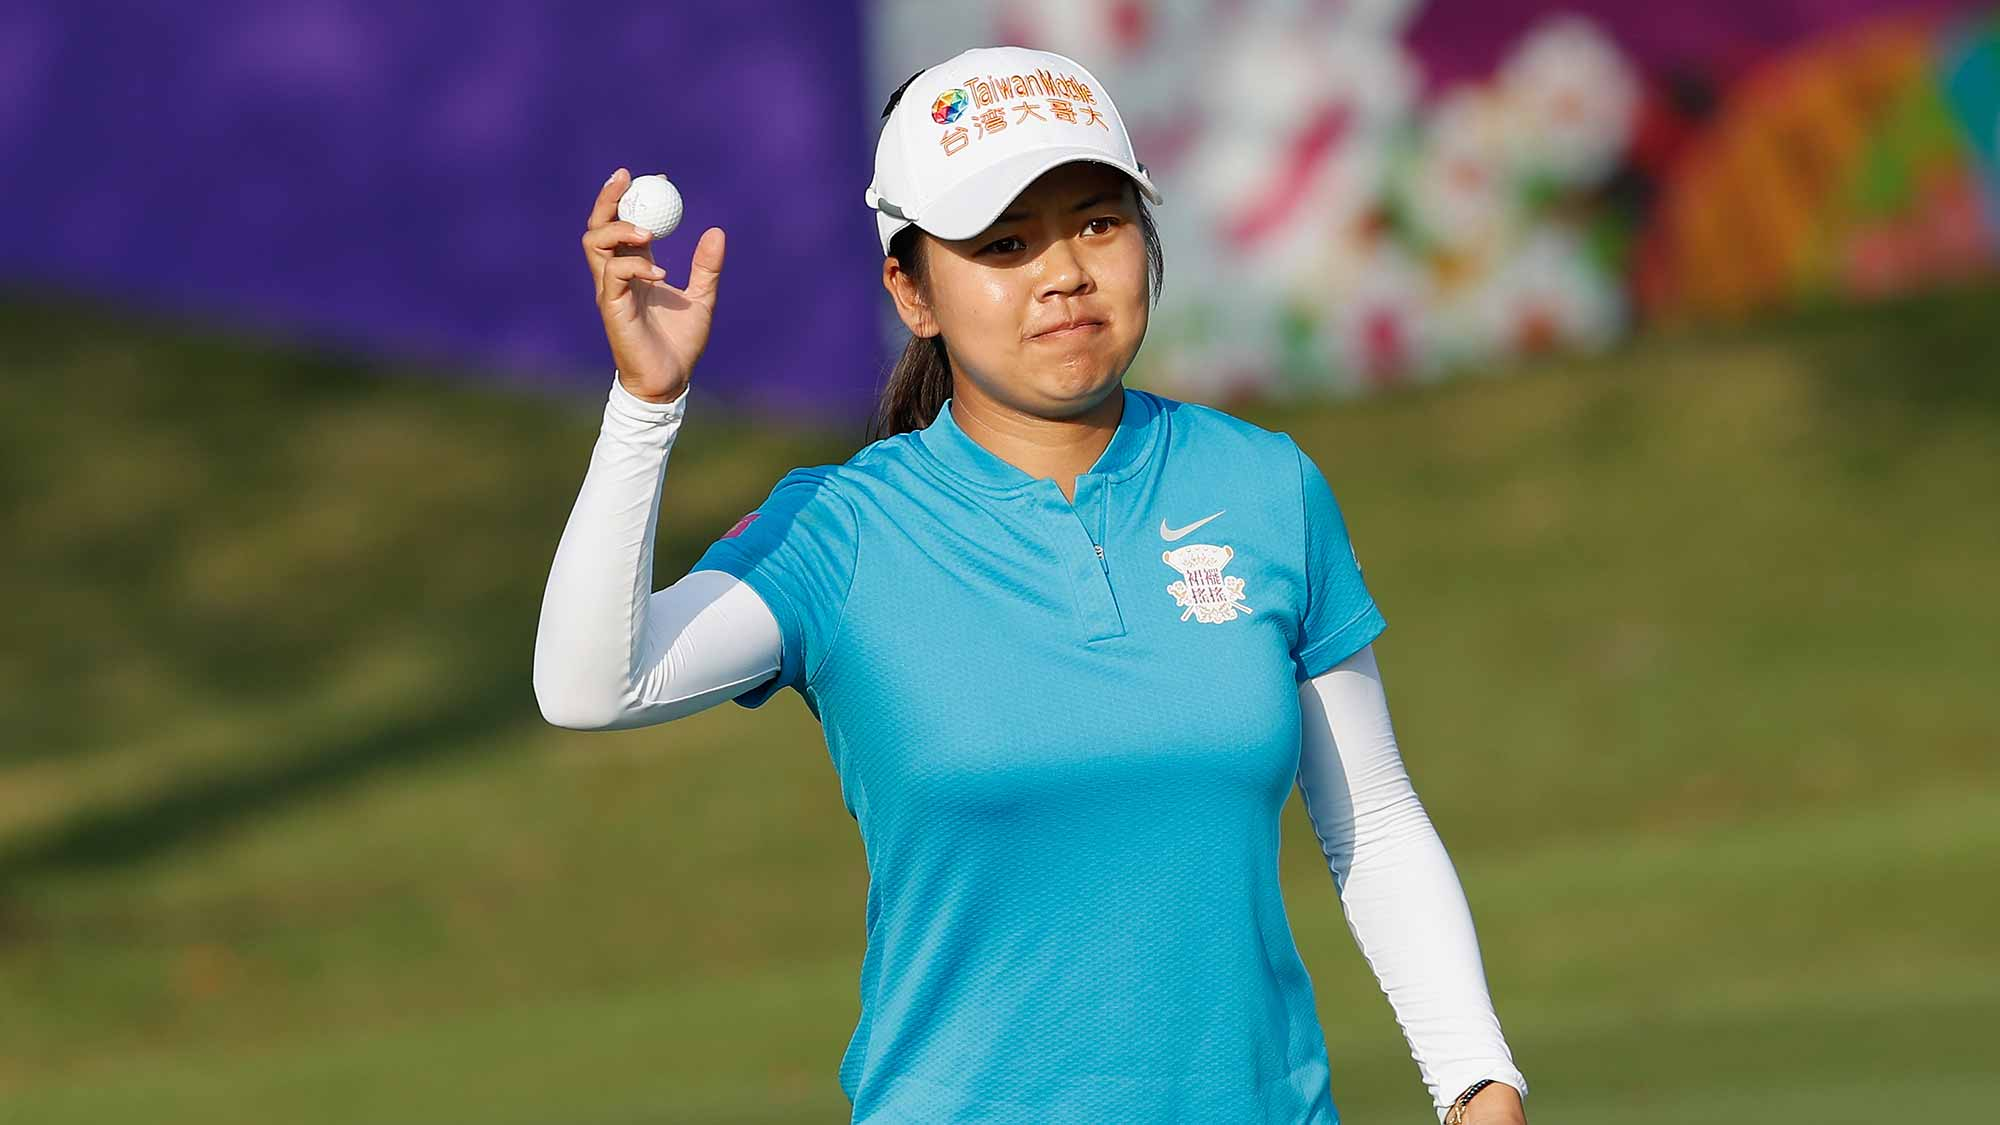 Wei-Ling Hsu of Chinese Taipei acknowledges to spectators after her shot at eighteen hole during the second round of the Swinging Skirts LPGA Taiwan Championship at Ta Shee Golf & Country Club on October 26, 2018 in Taoyuan, Chinese Taipei